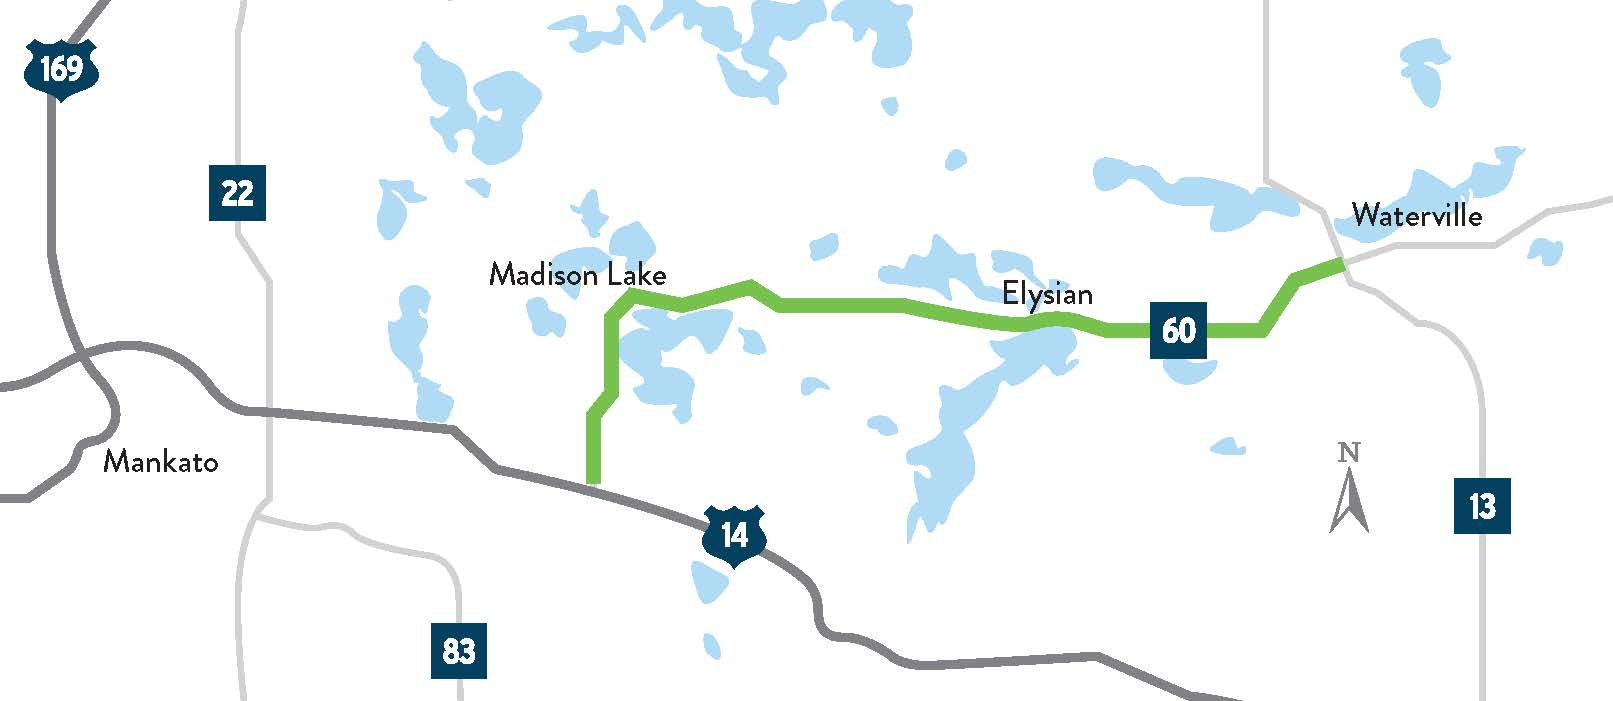 Hwy 60 Madison Lake, Elysian, Waterville - MnDOT